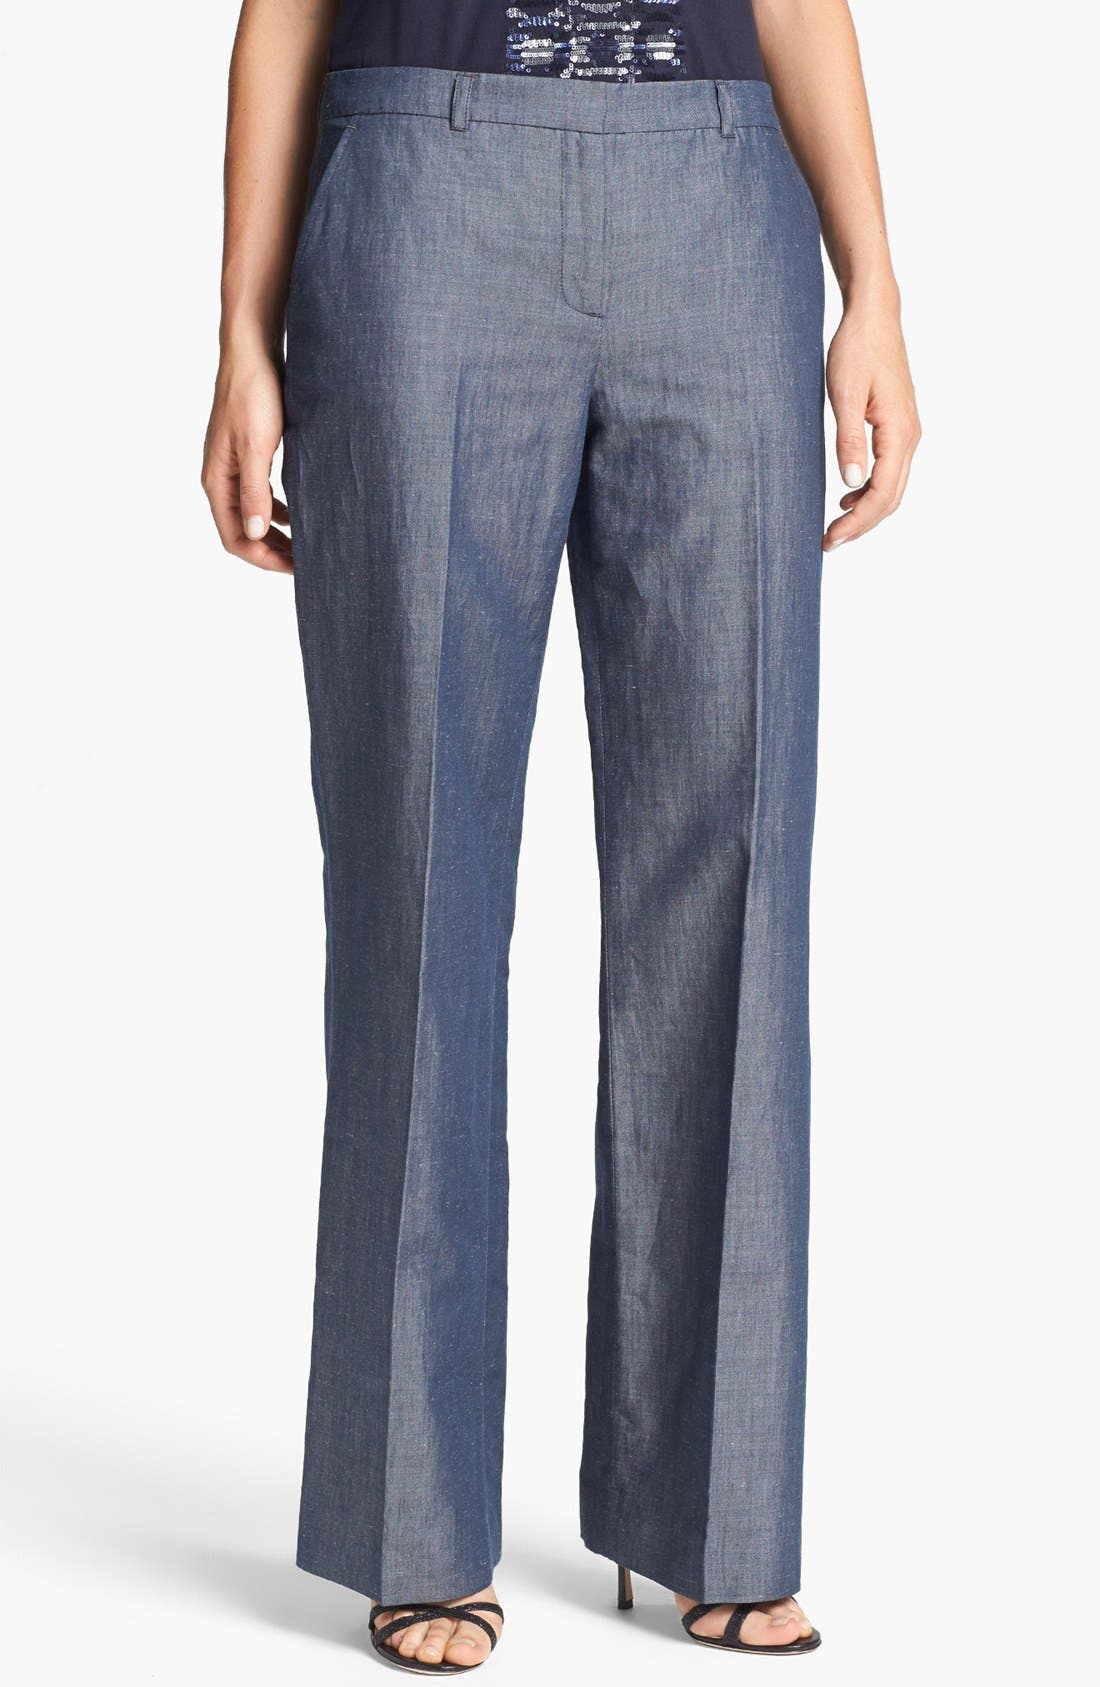 Alternate Image 1 Selected - Adrianna Papell Wide Leg Chambray Pants